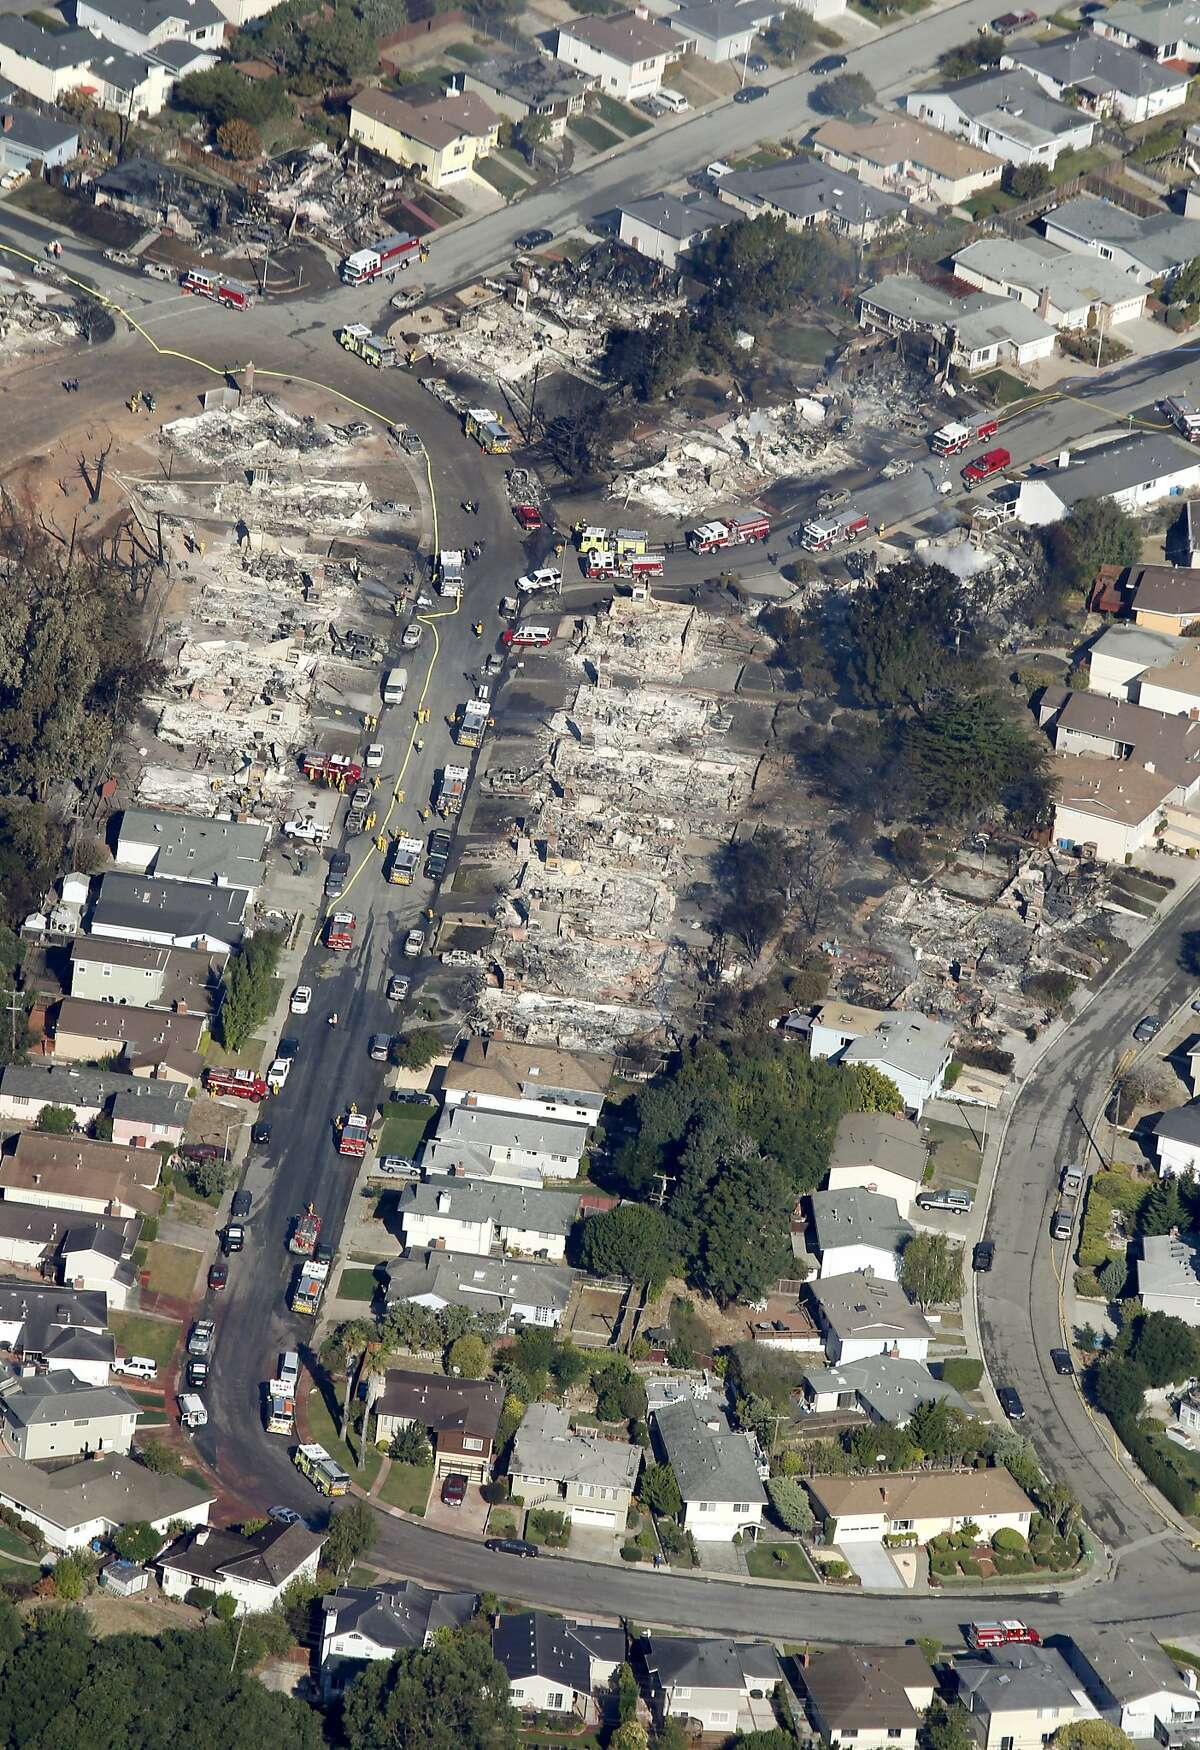 A large section of a neighborhood lies in ruins in San Bruno, Calif. on Friday, Sept. 10, 2010 after a massive natural gas pipeline explosion Thursday night.